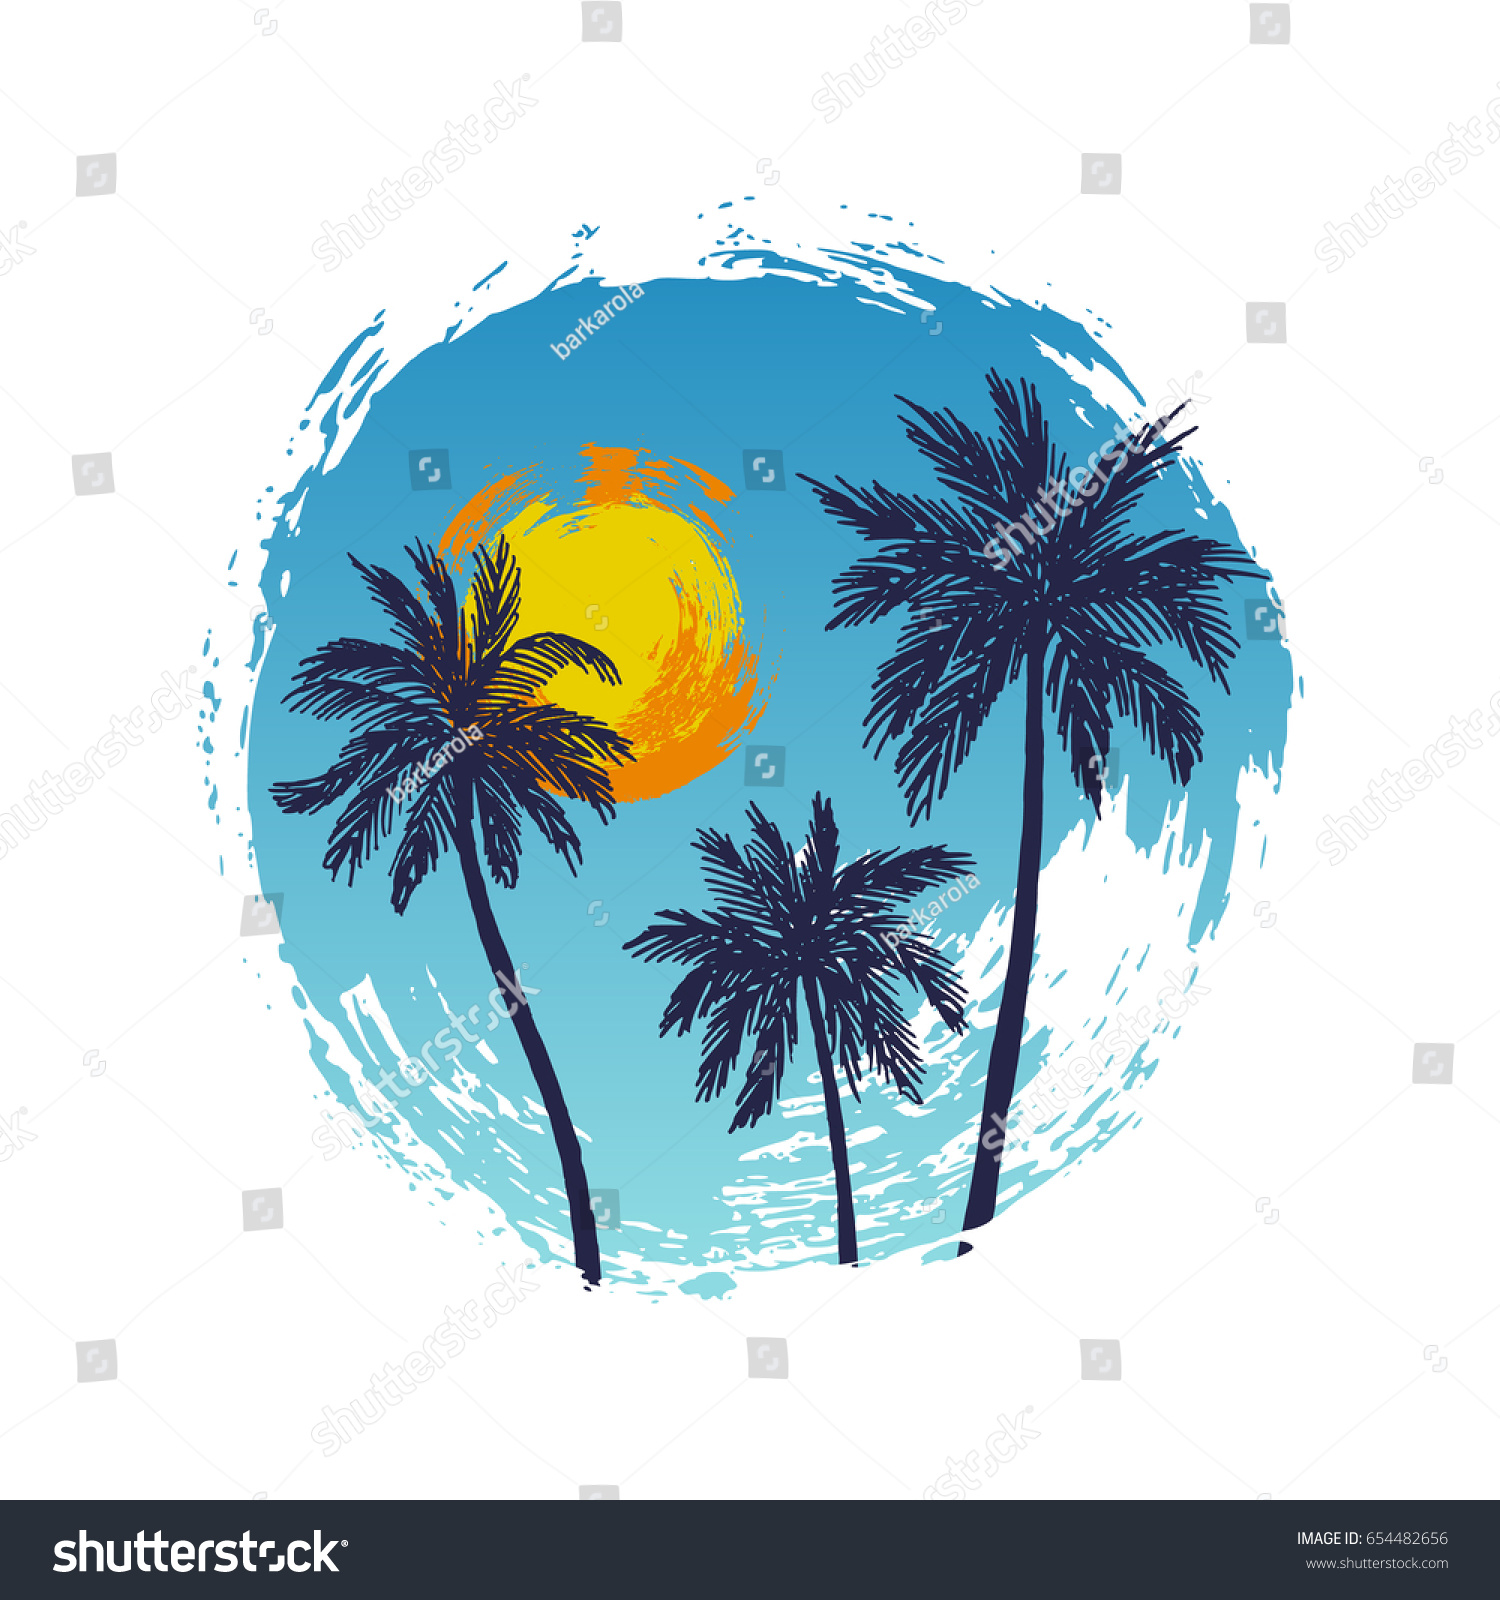 Vector Illustration Hand Drawn Palm Trees Stock Vector Royalty Free 654482656